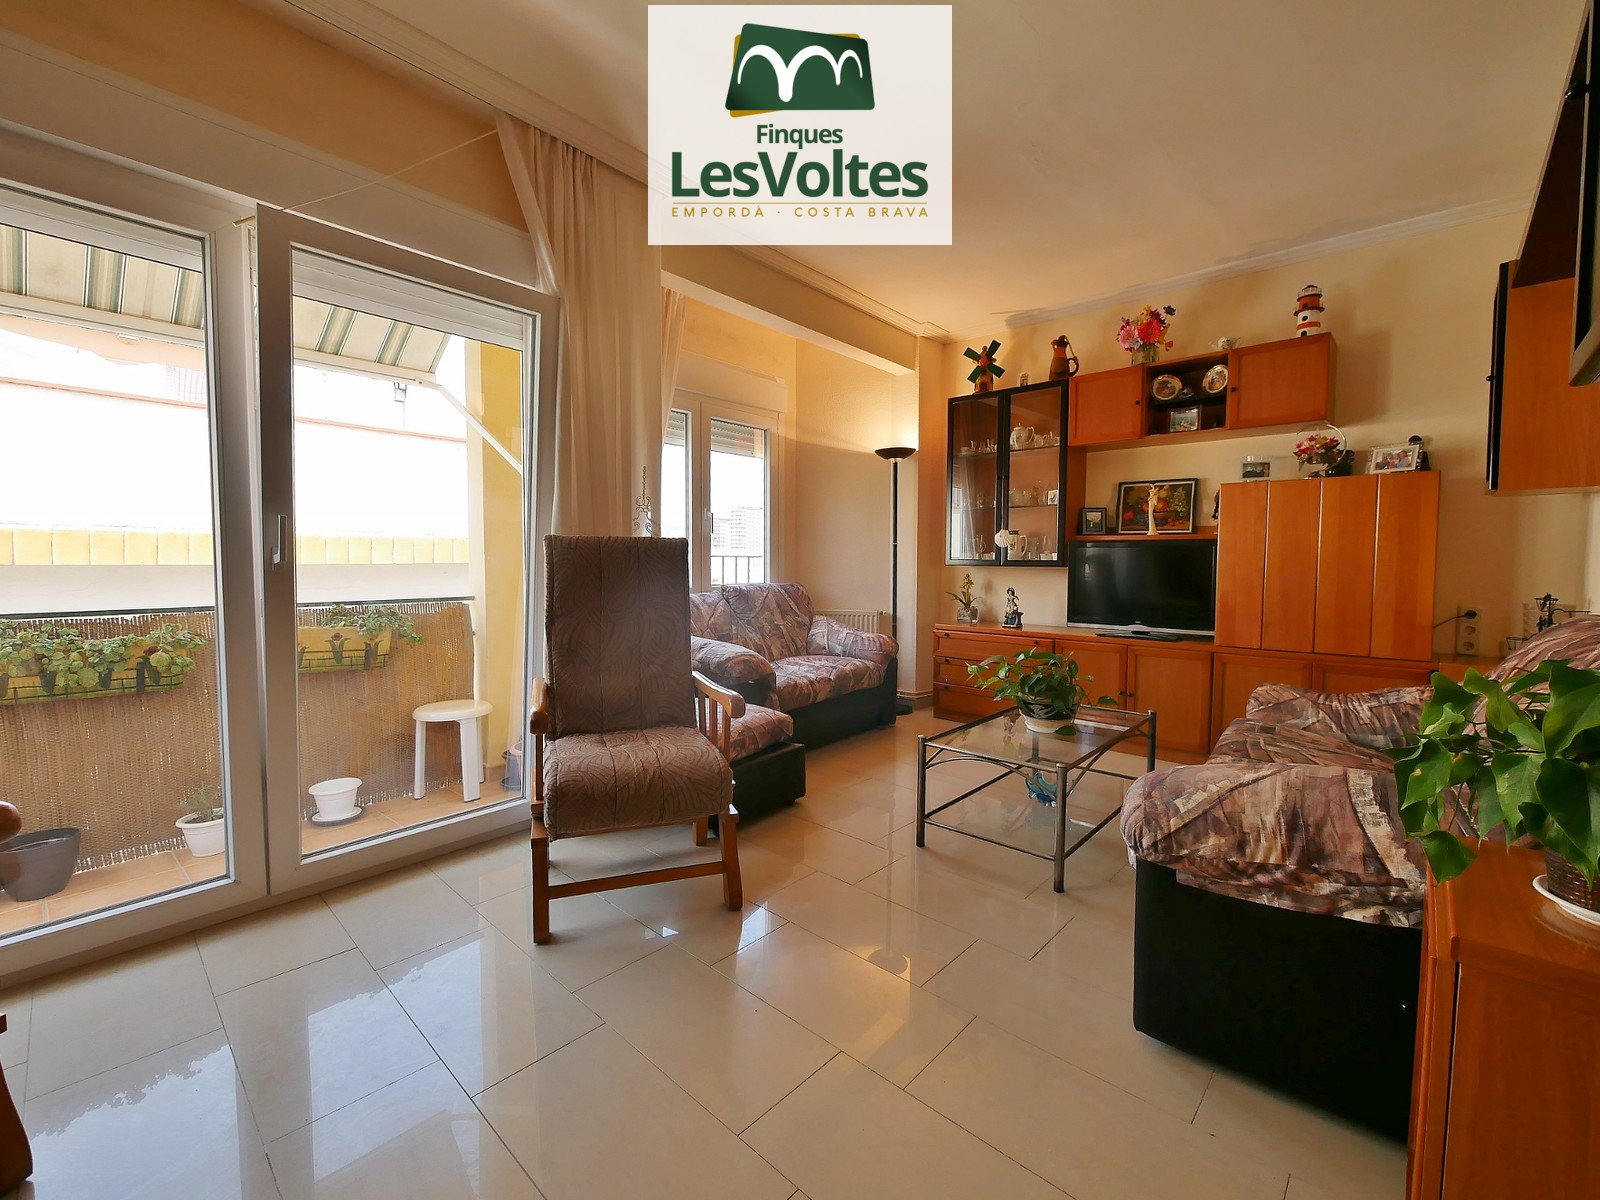 MAGNIFICENT APARTMENT WITH 2 DOUBLE ROOMS COMPLETELY RENOVATED FOR SALE IN PALAMÓS ZONA DEL PADRÓ.